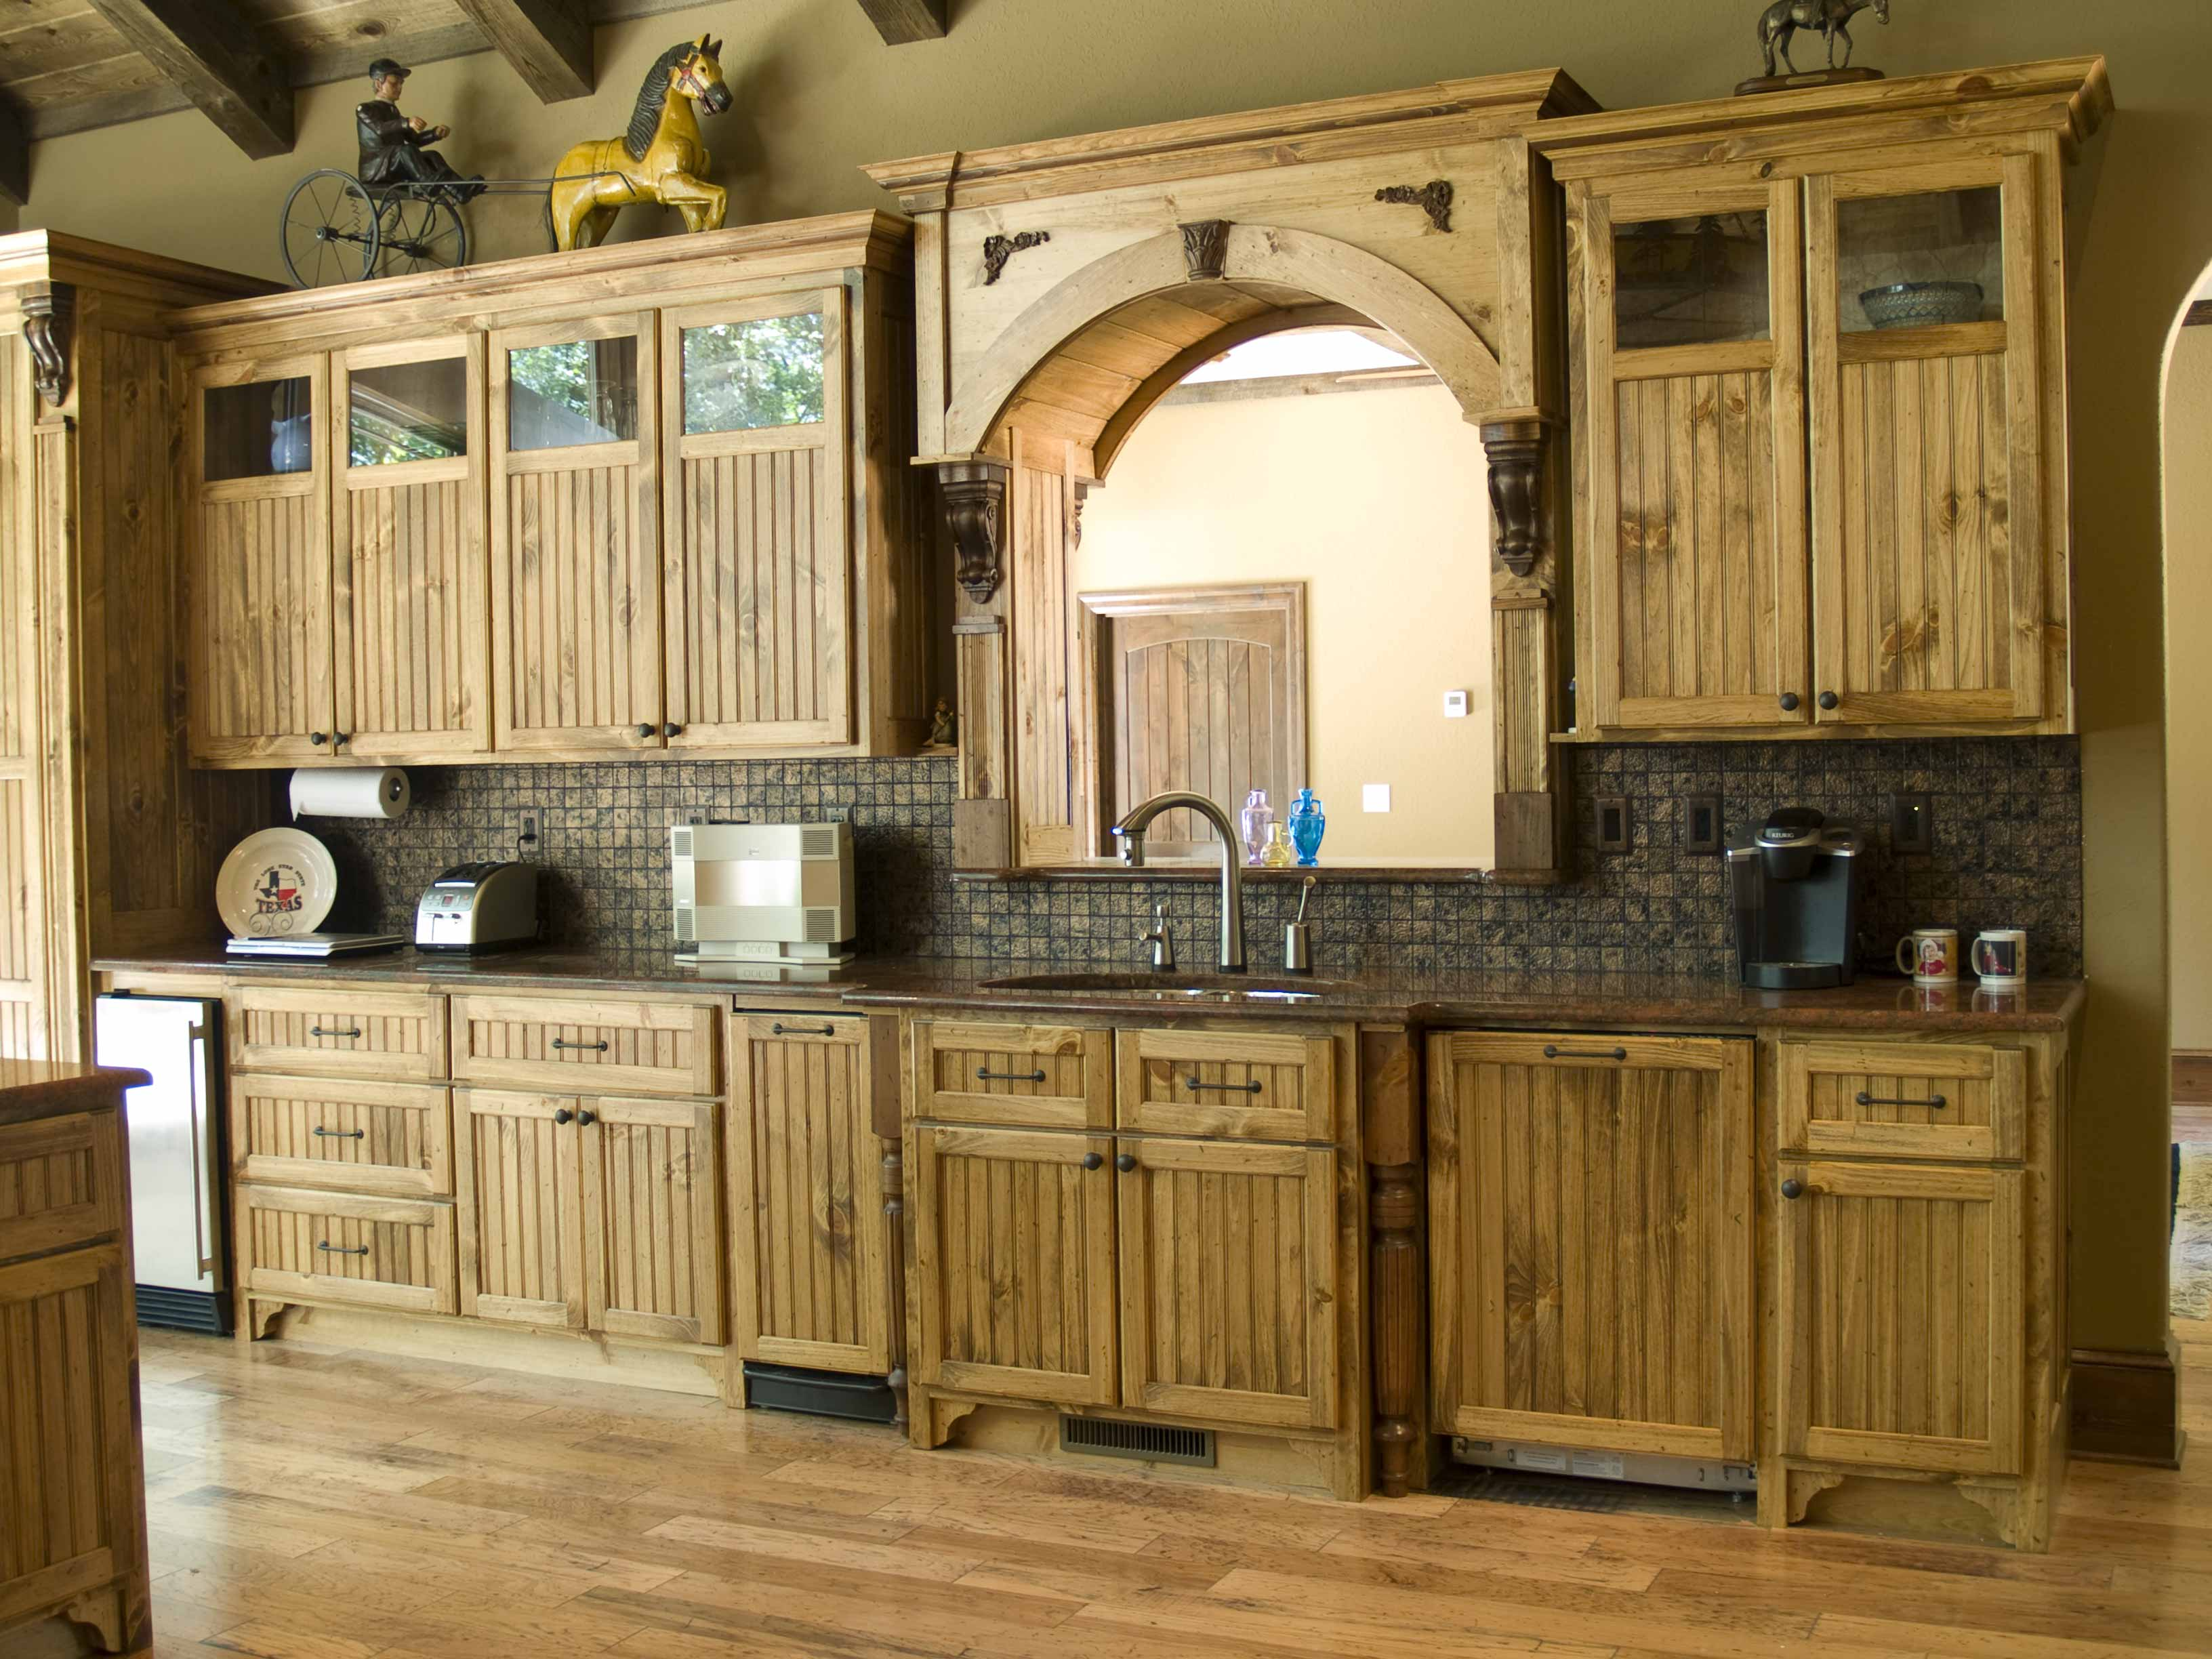 Kitchen armoire cabinets Photo - 6